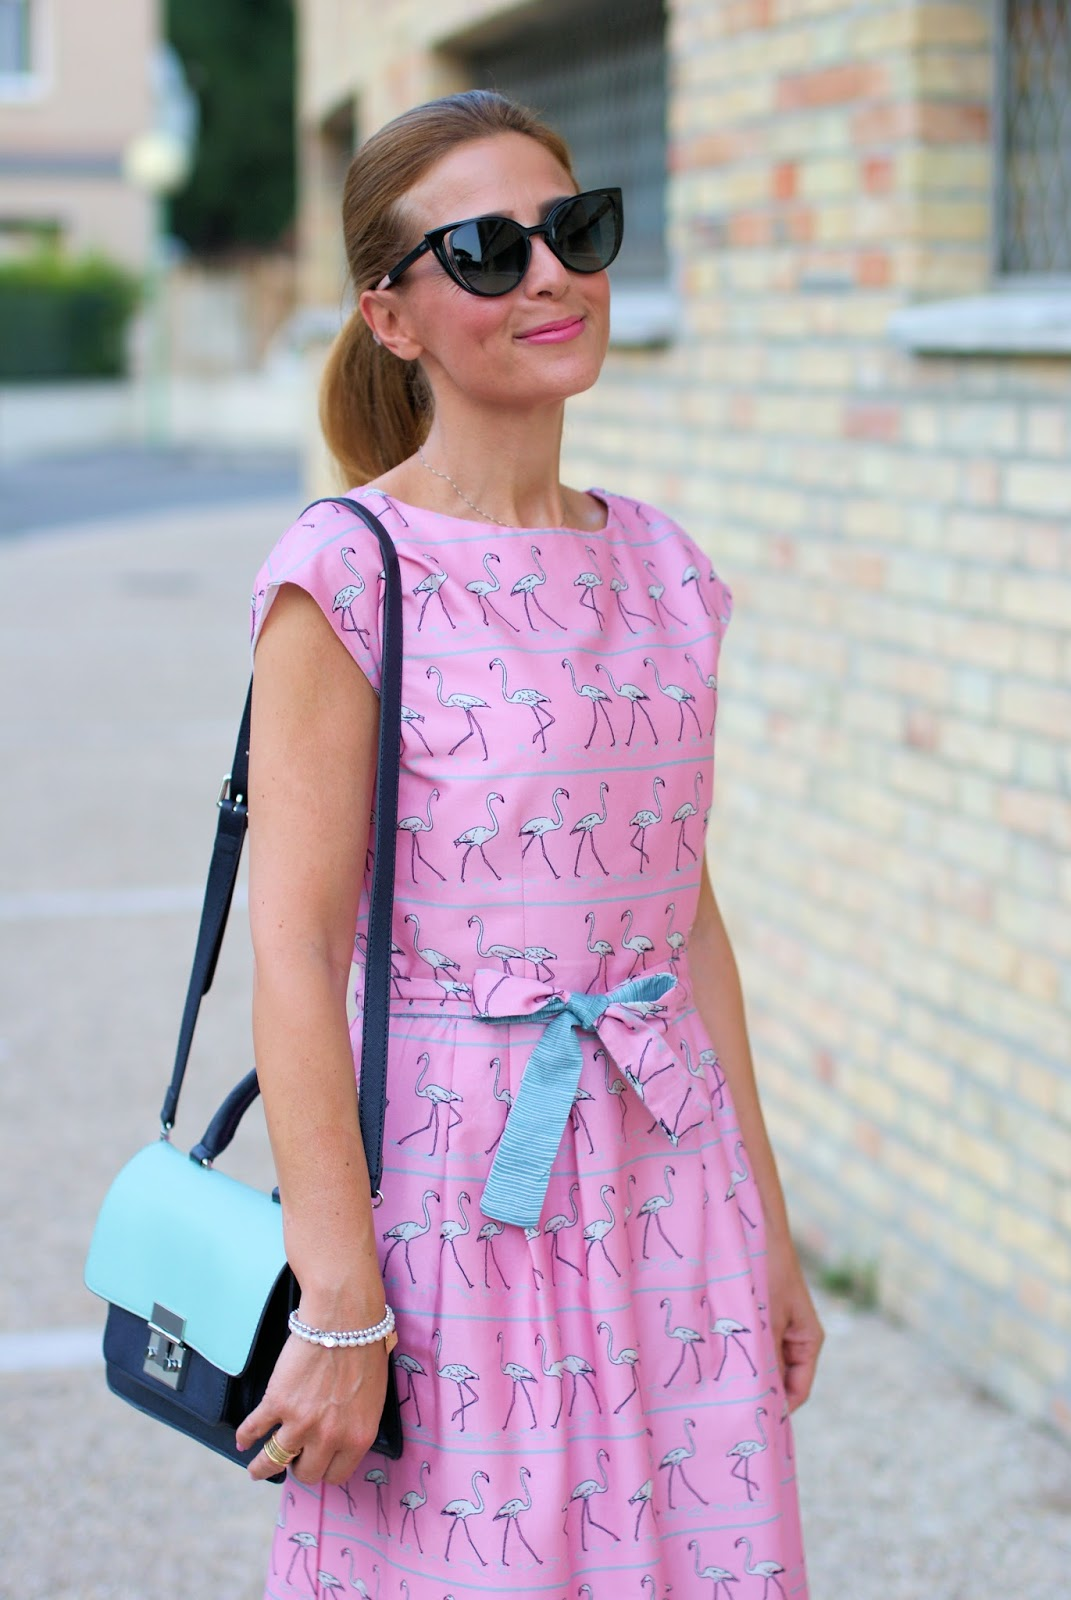 Bryony and Co pink flamingo dress, abito fenicotteri rosa on Fashion and Cookies fashion blog, fashion blogger style